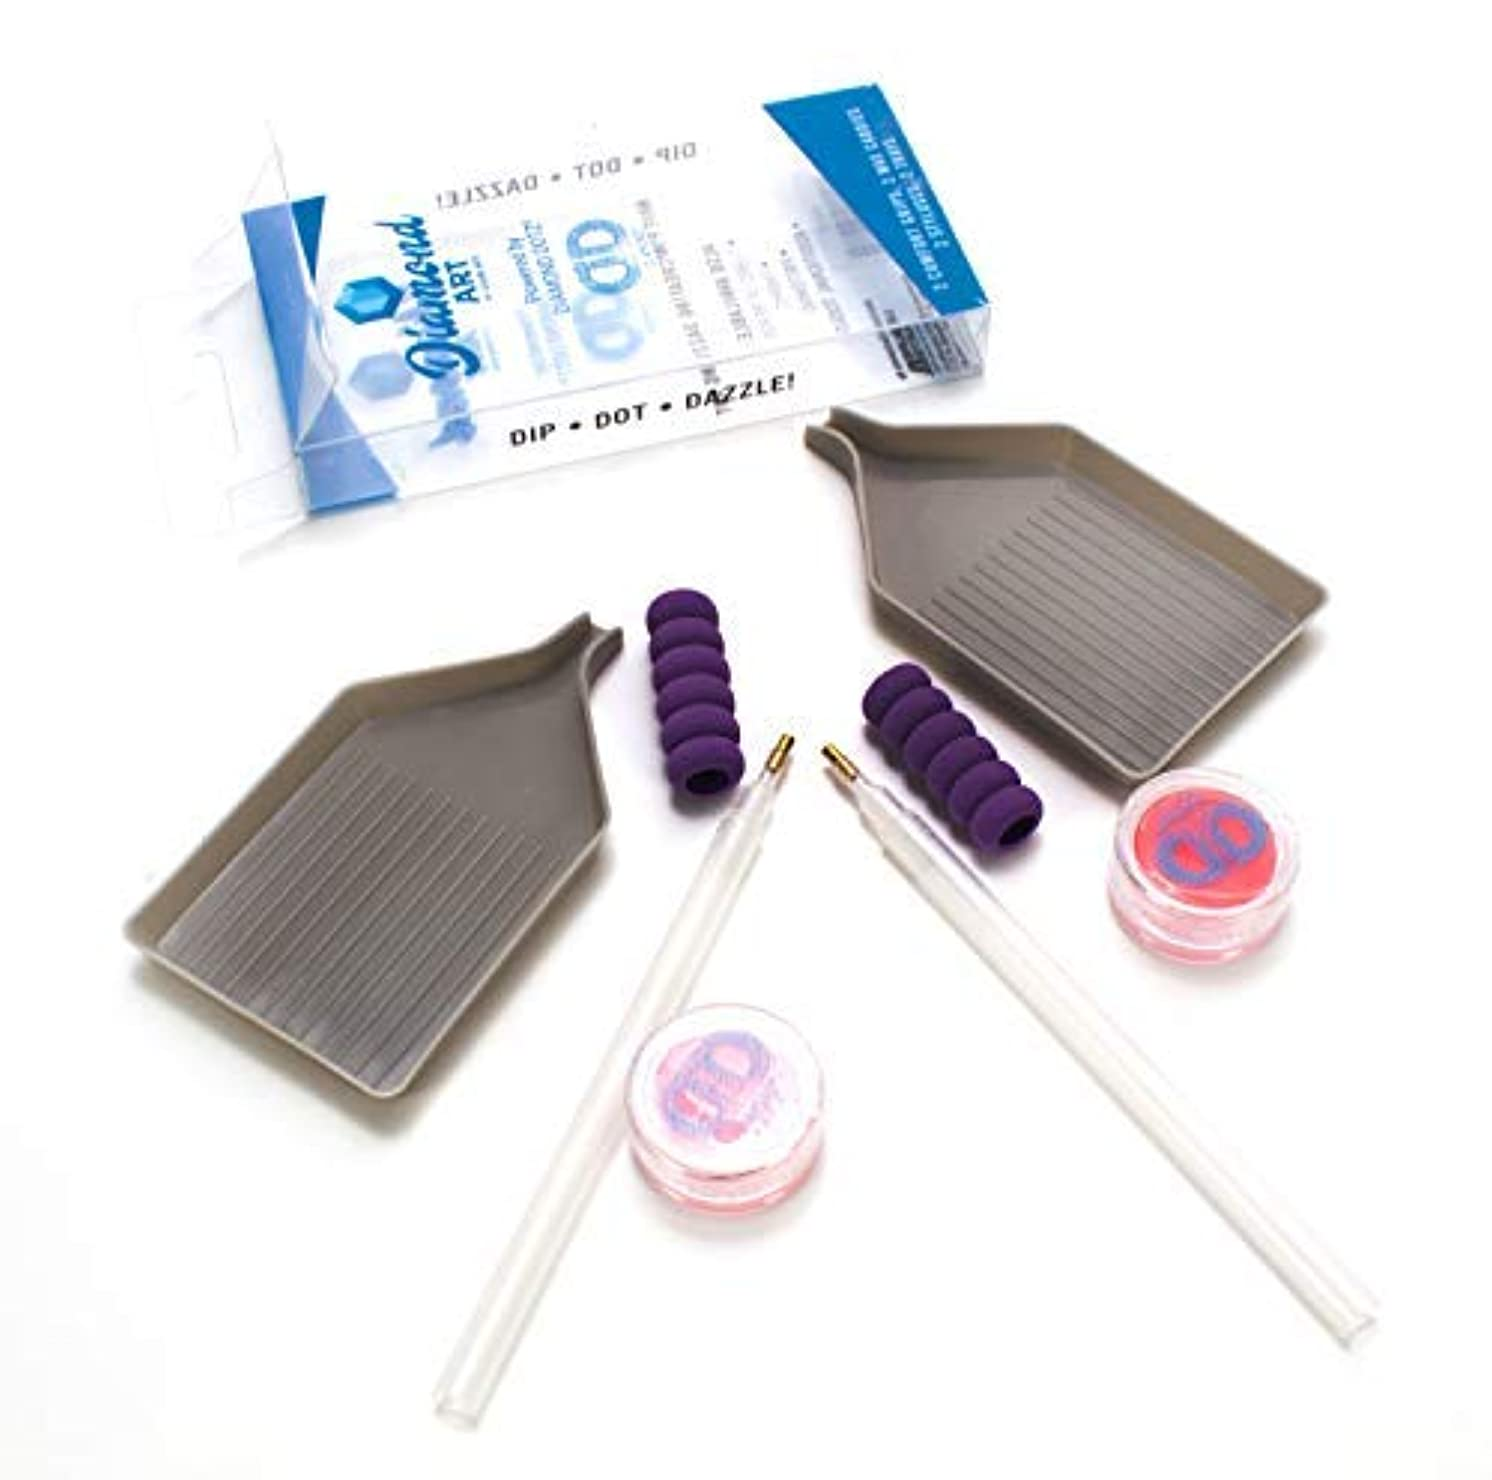 Diamond Art - Diamond Painting Accessory Kit - 2 Styluses, 2 Trays, 2 Wax Caddies and 2 Comfort Grips